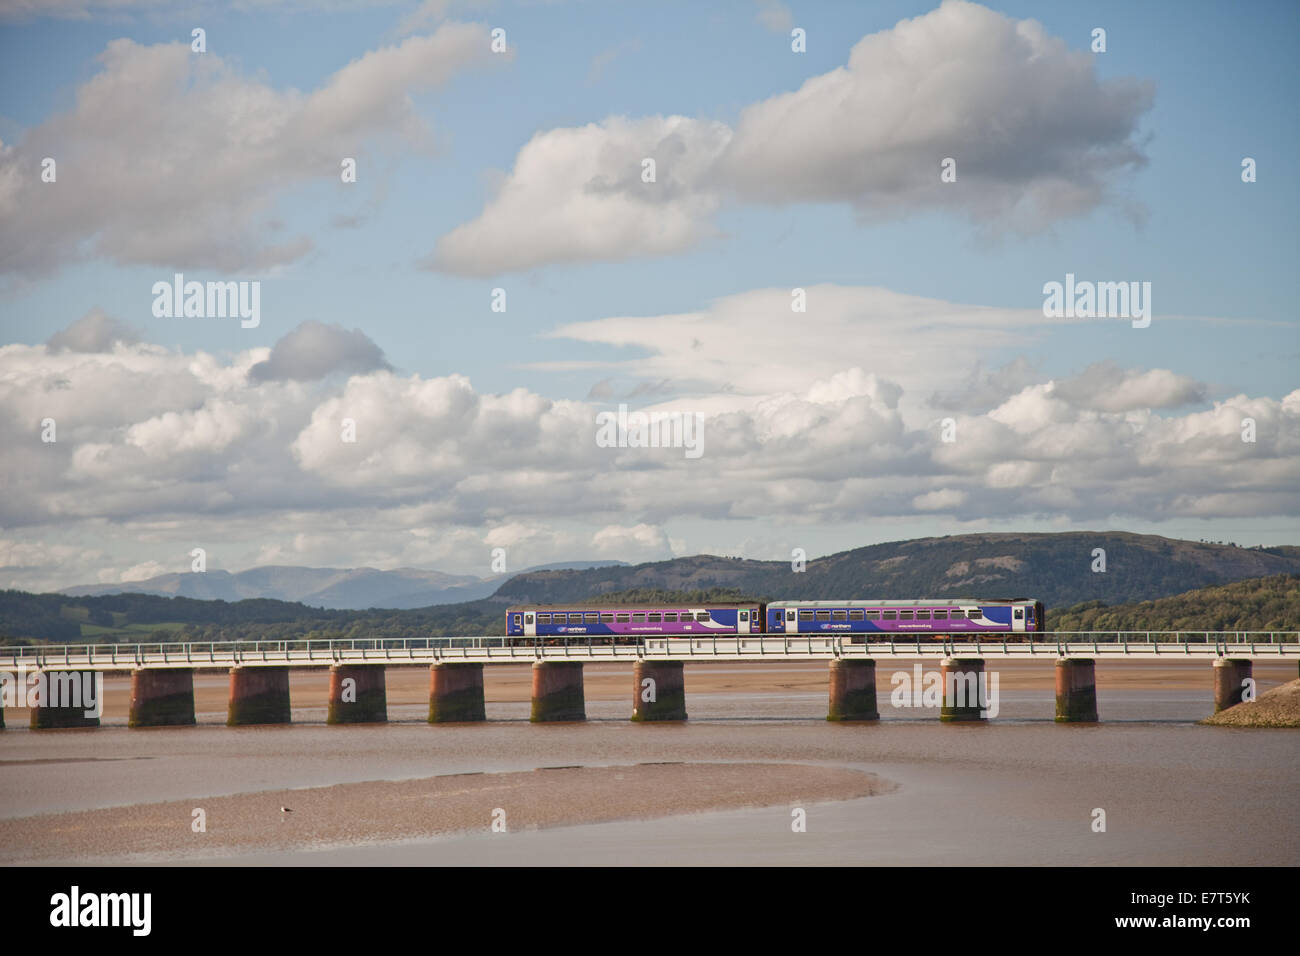 A commuter train crosses the railway bridge that crosses the river dart at Arnside, in Cumbria,as white clouds scurry - Stock Image